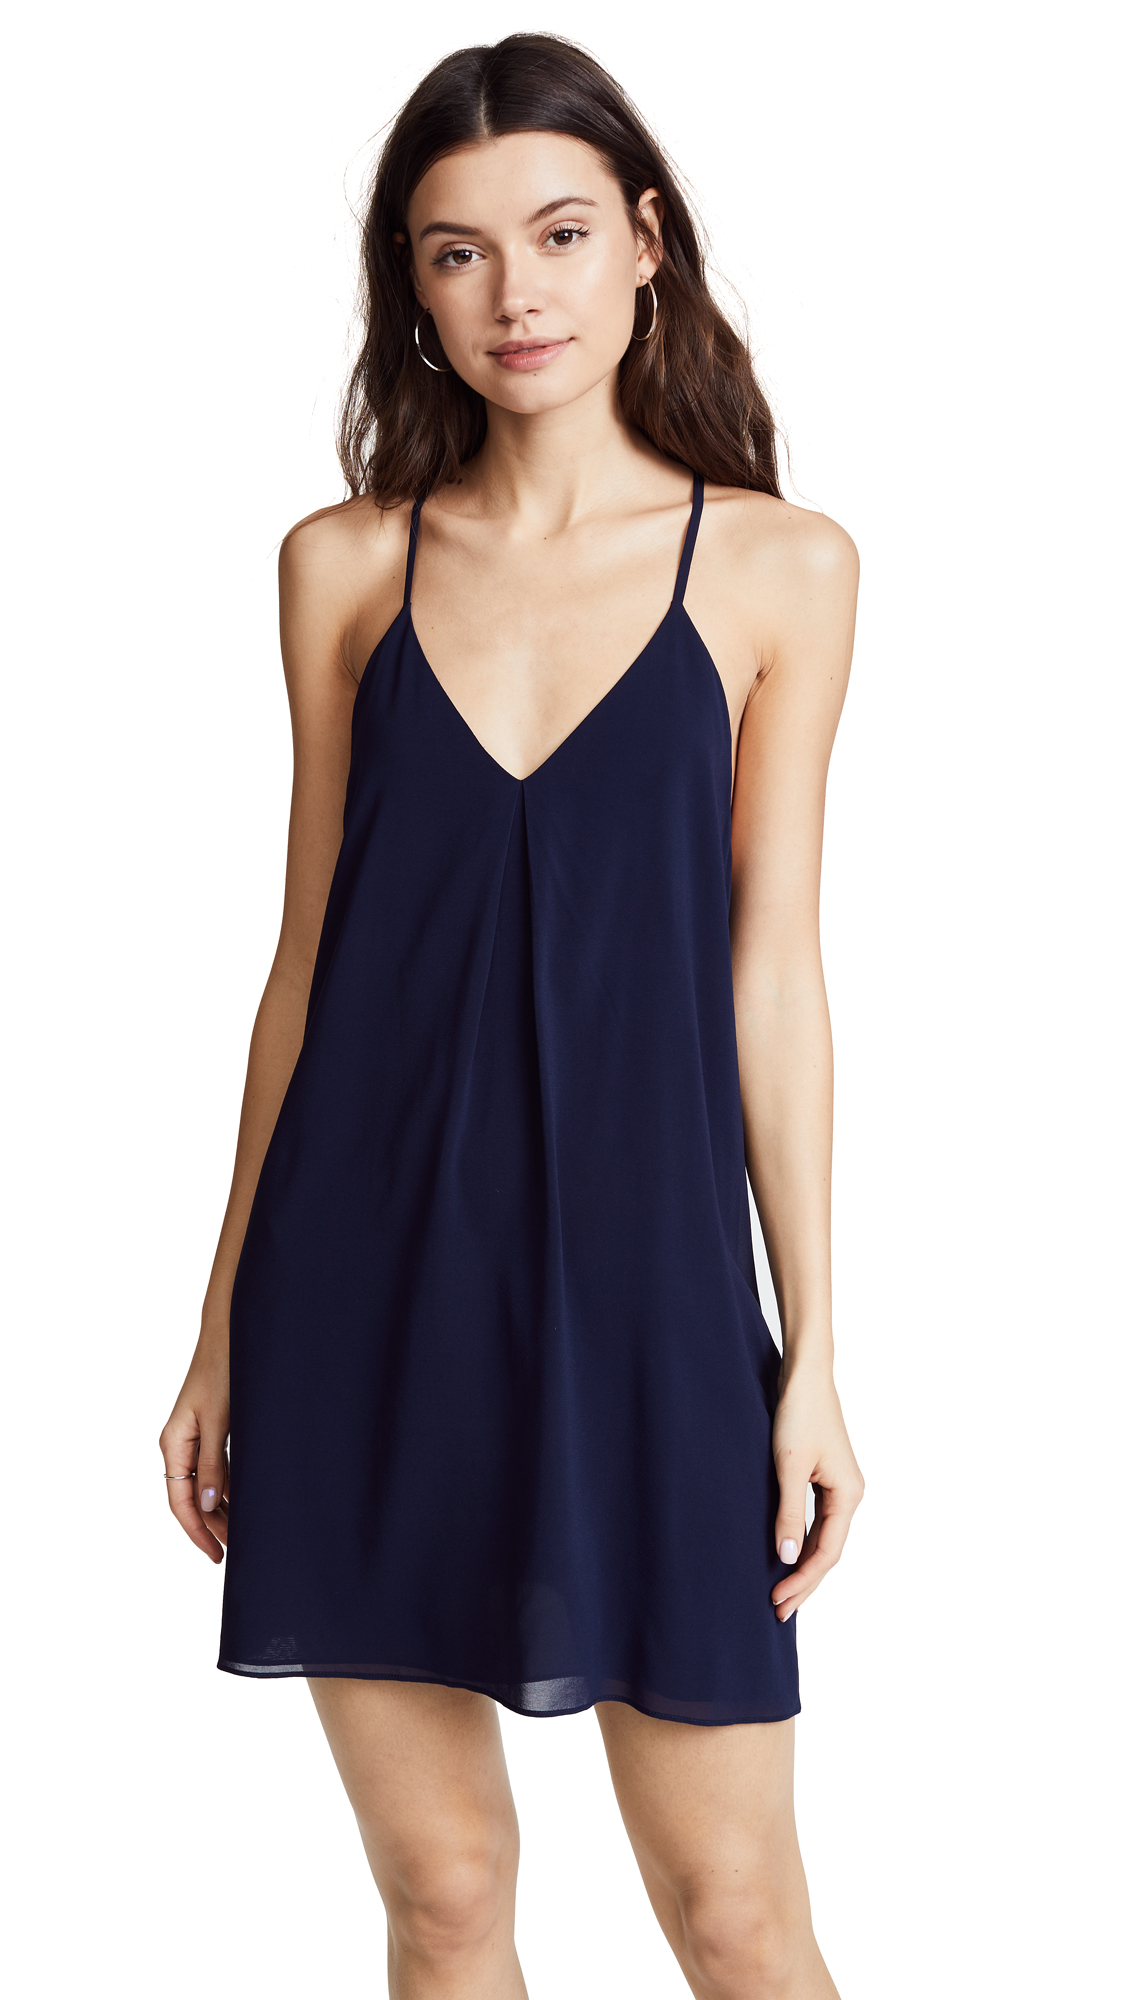 alice + olivia Fierra Dress - Navy